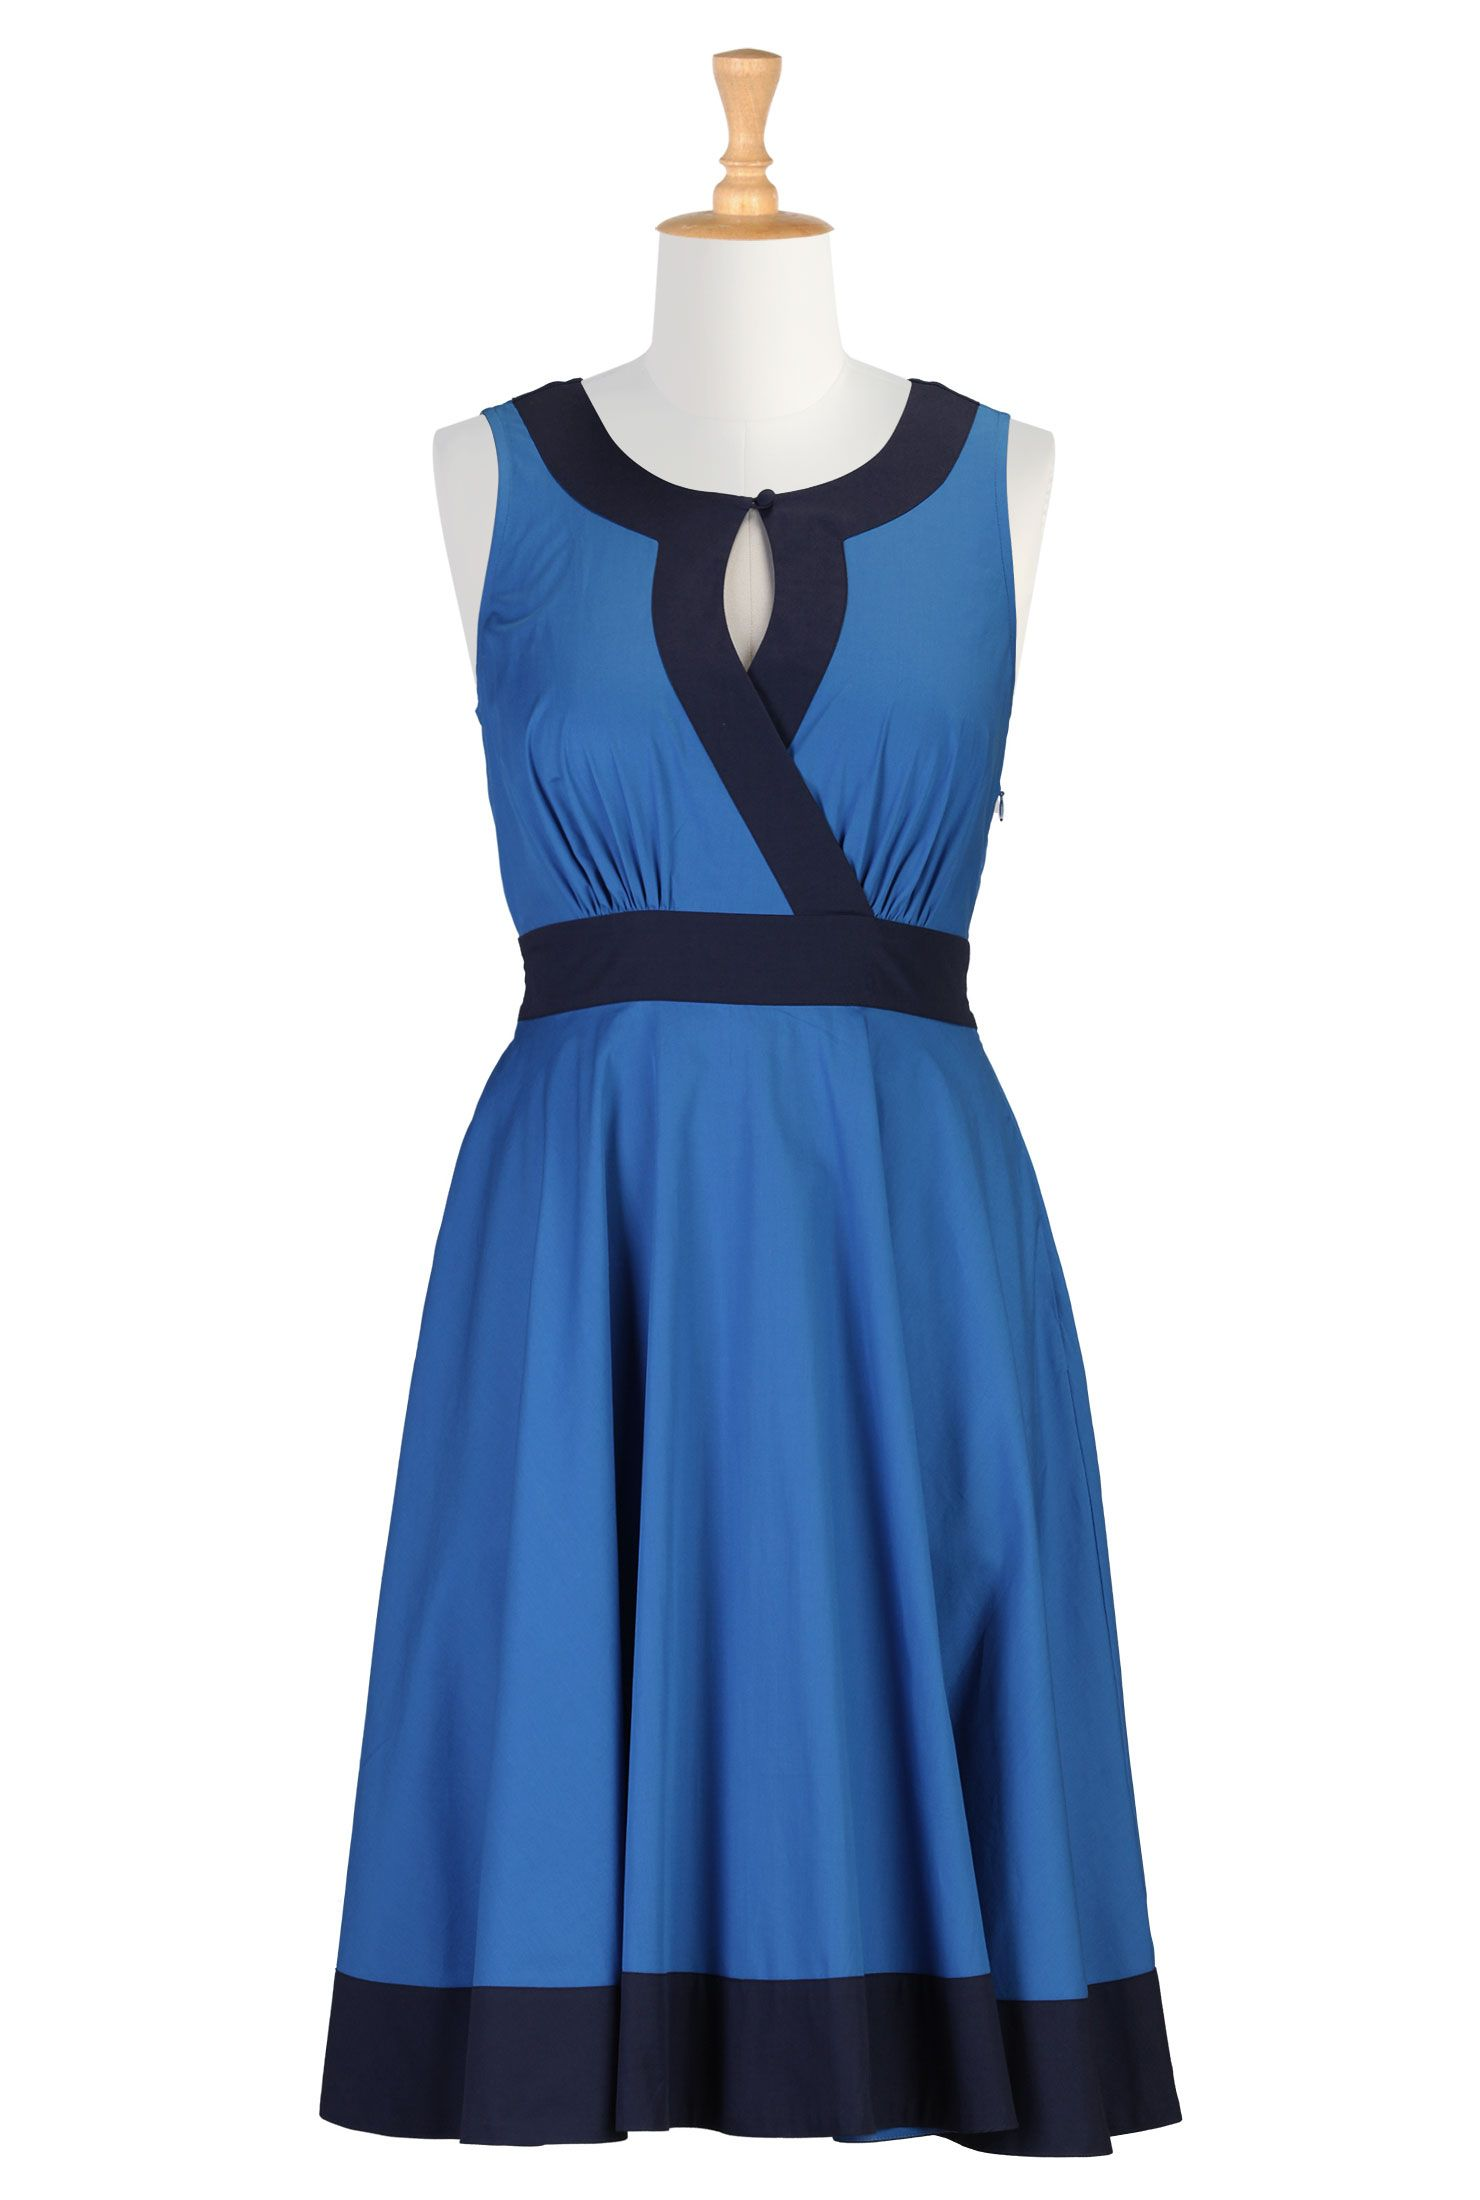 Blue Themed Casual Dresses : Casual Blue Dress  Clothing ...